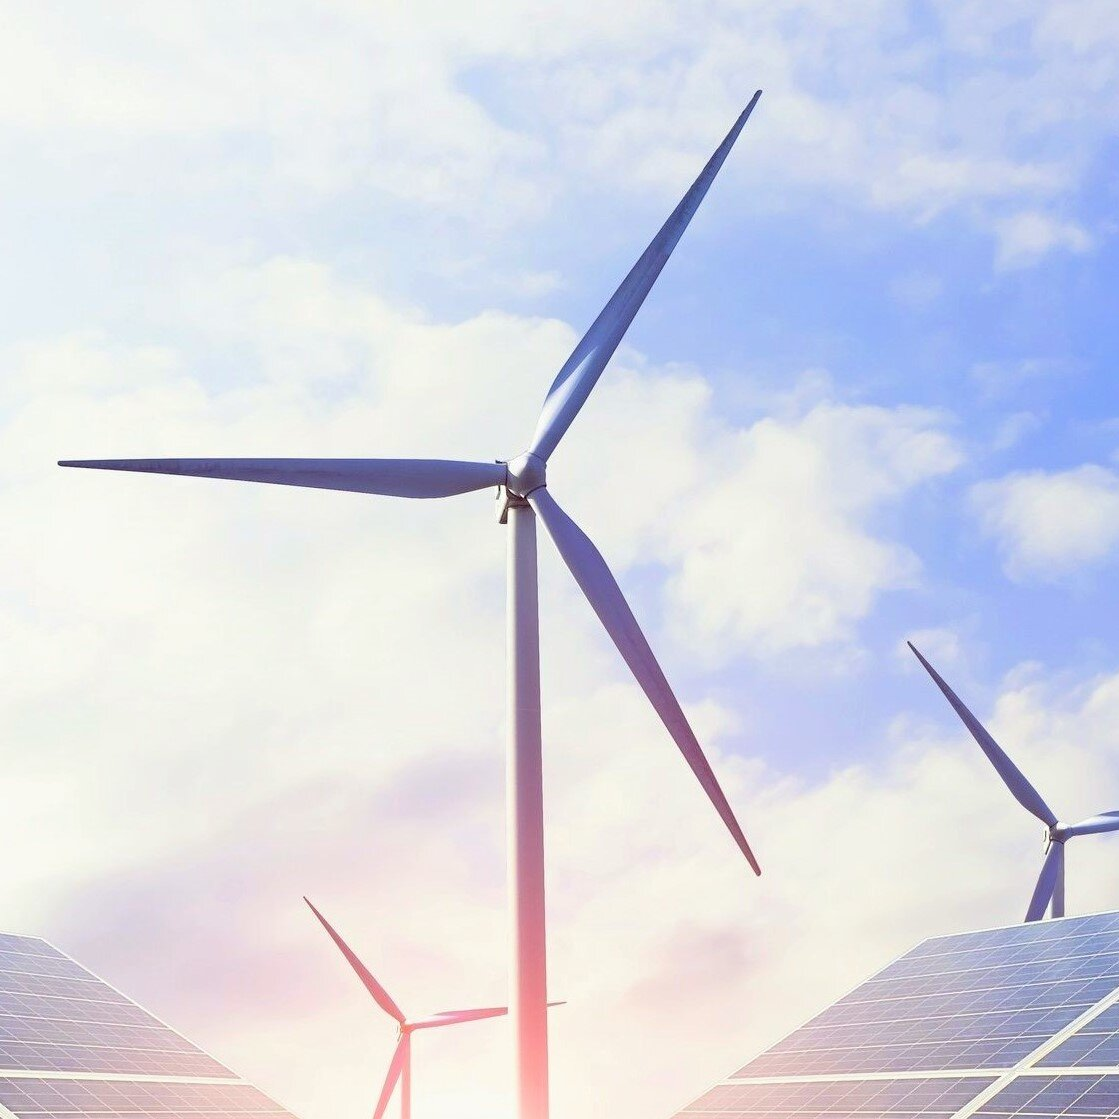 Energy-saving technology such as windmills and solar panels